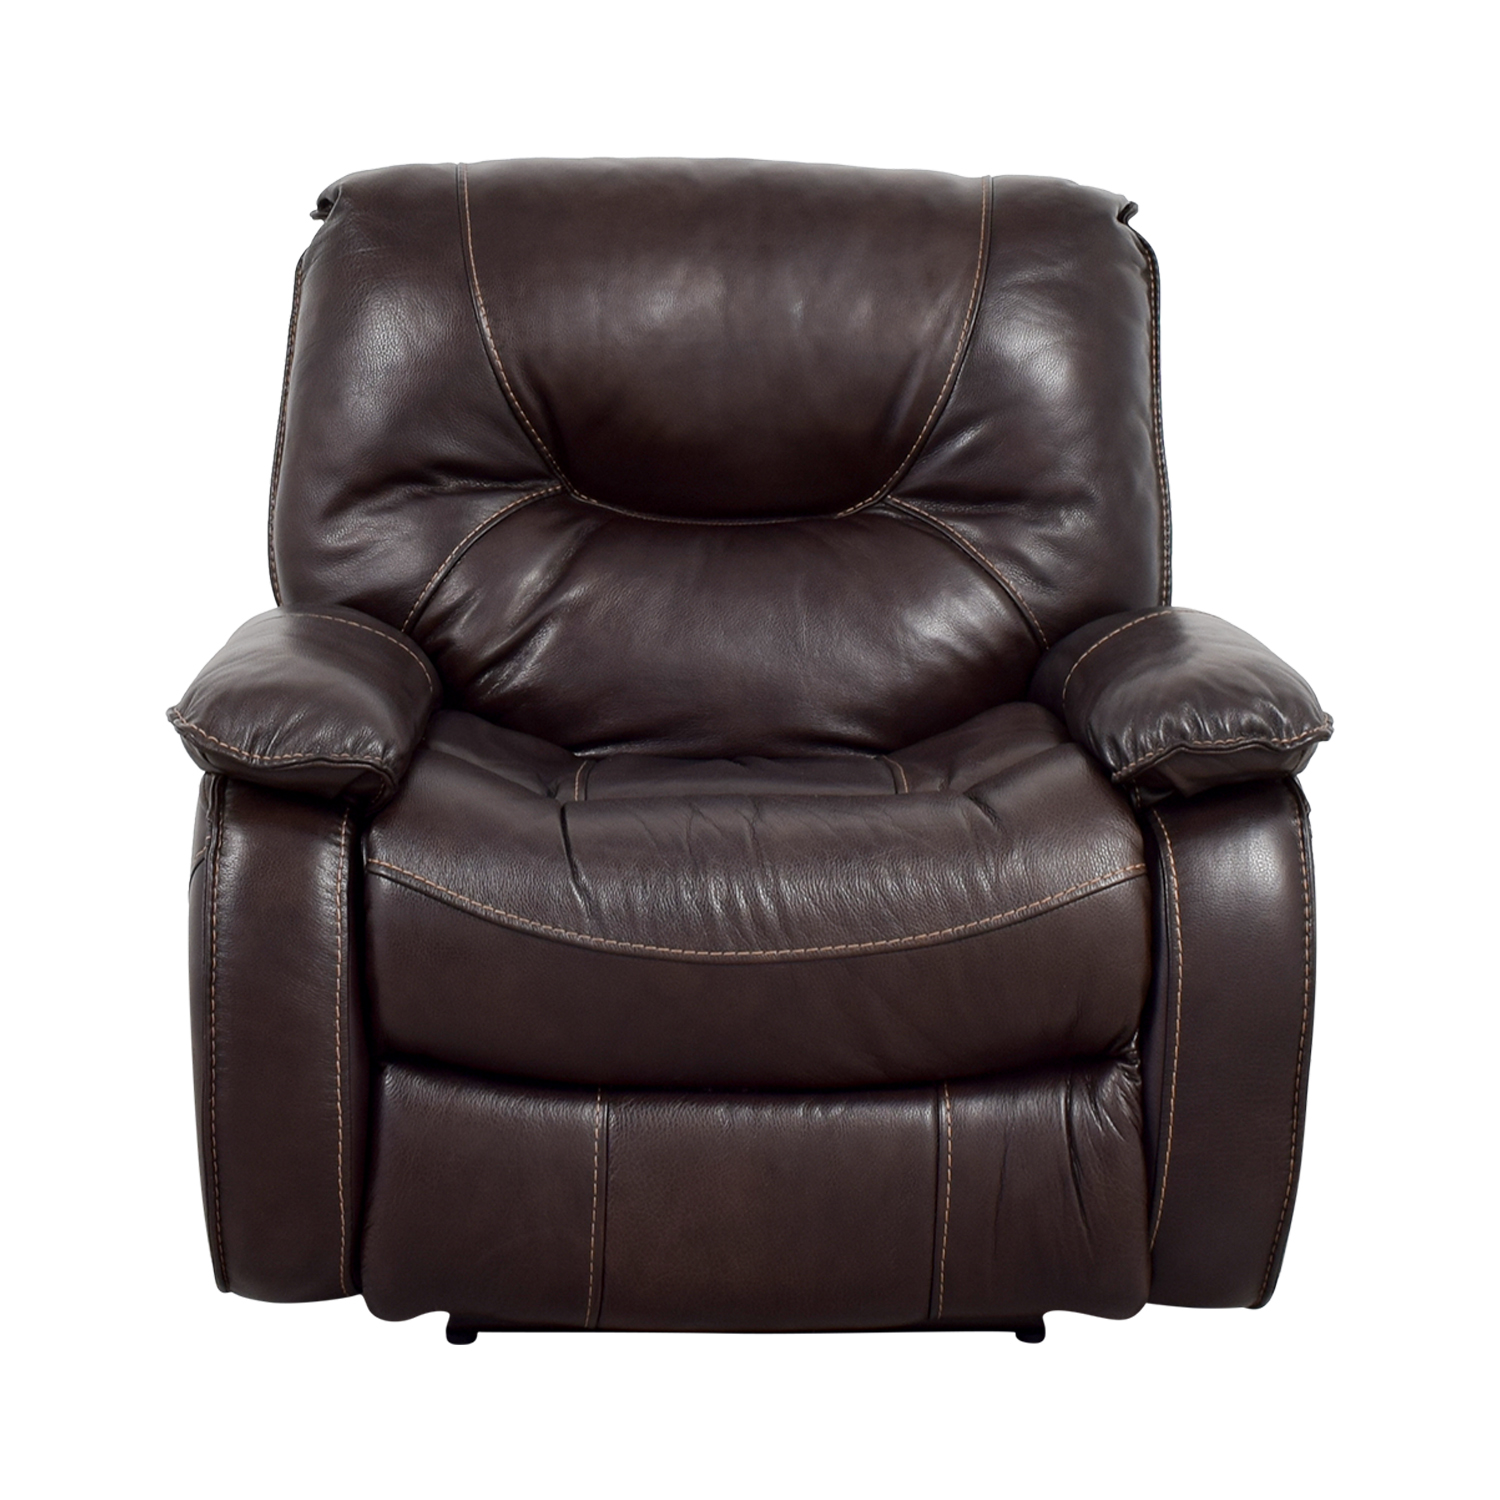 reclining chairs for sale vintage metal recliners used